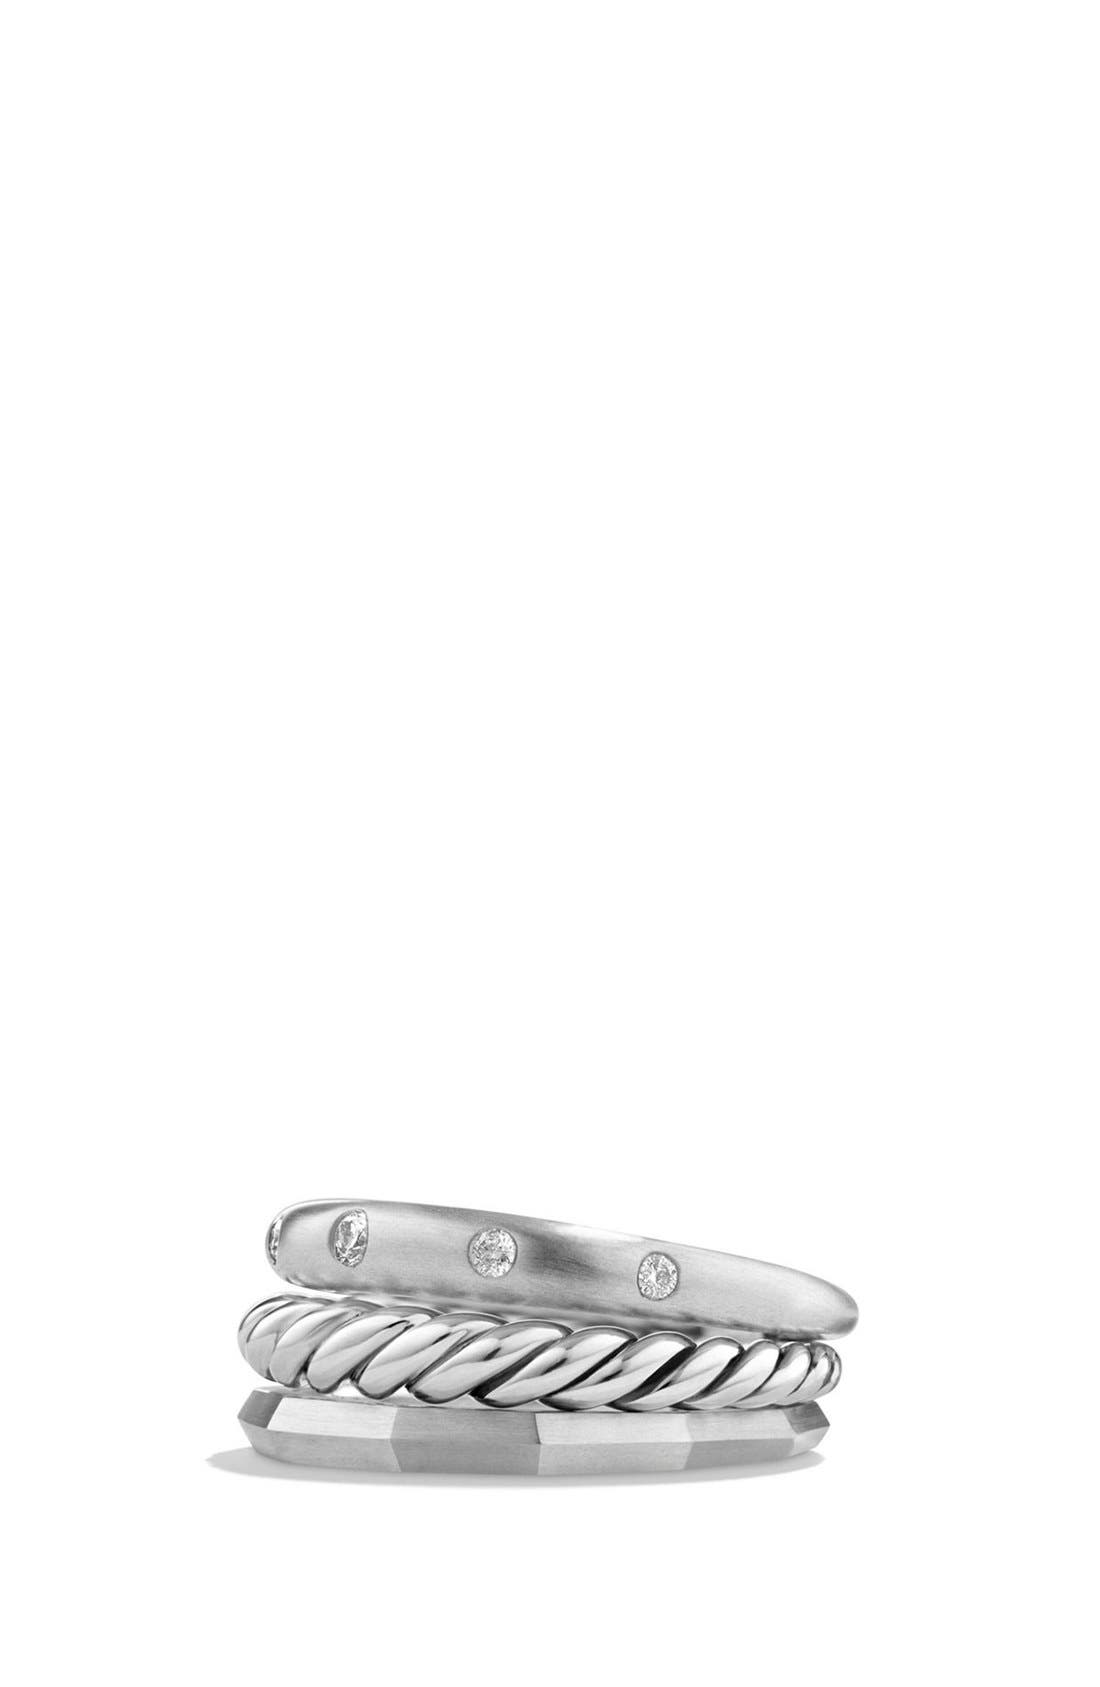 'Stax' Ring with Diamonds,                             Main thumbnail 1, color,                             Silver